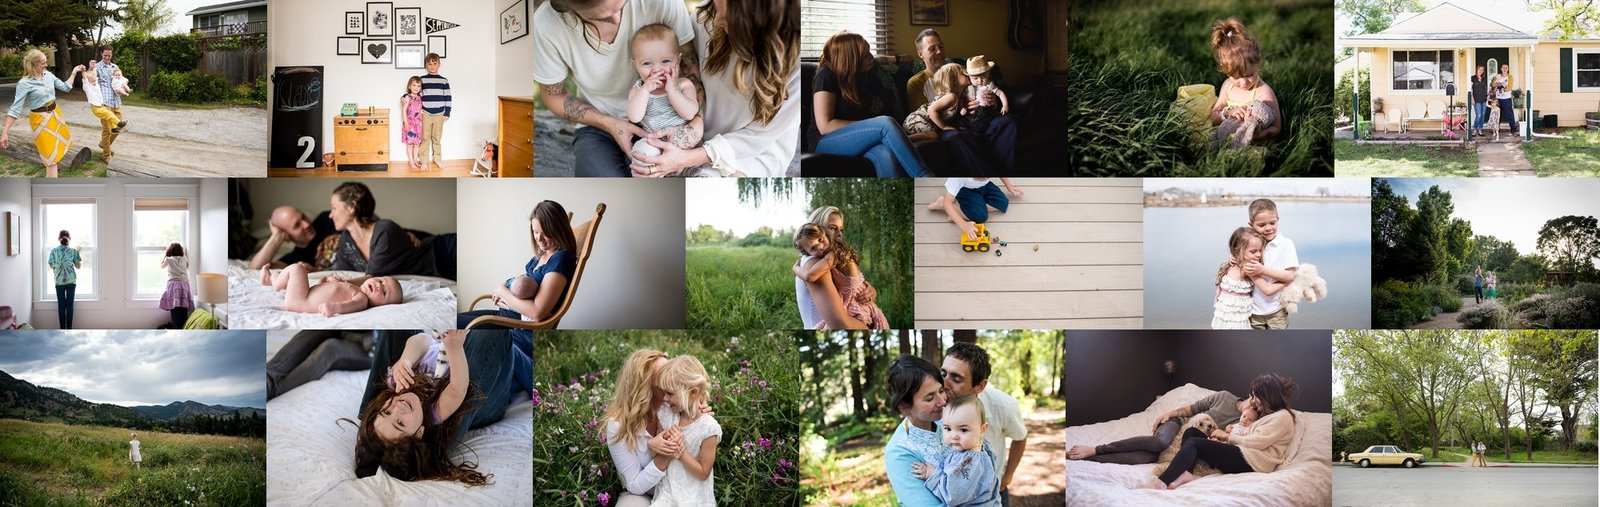 san luis obispo family photographer